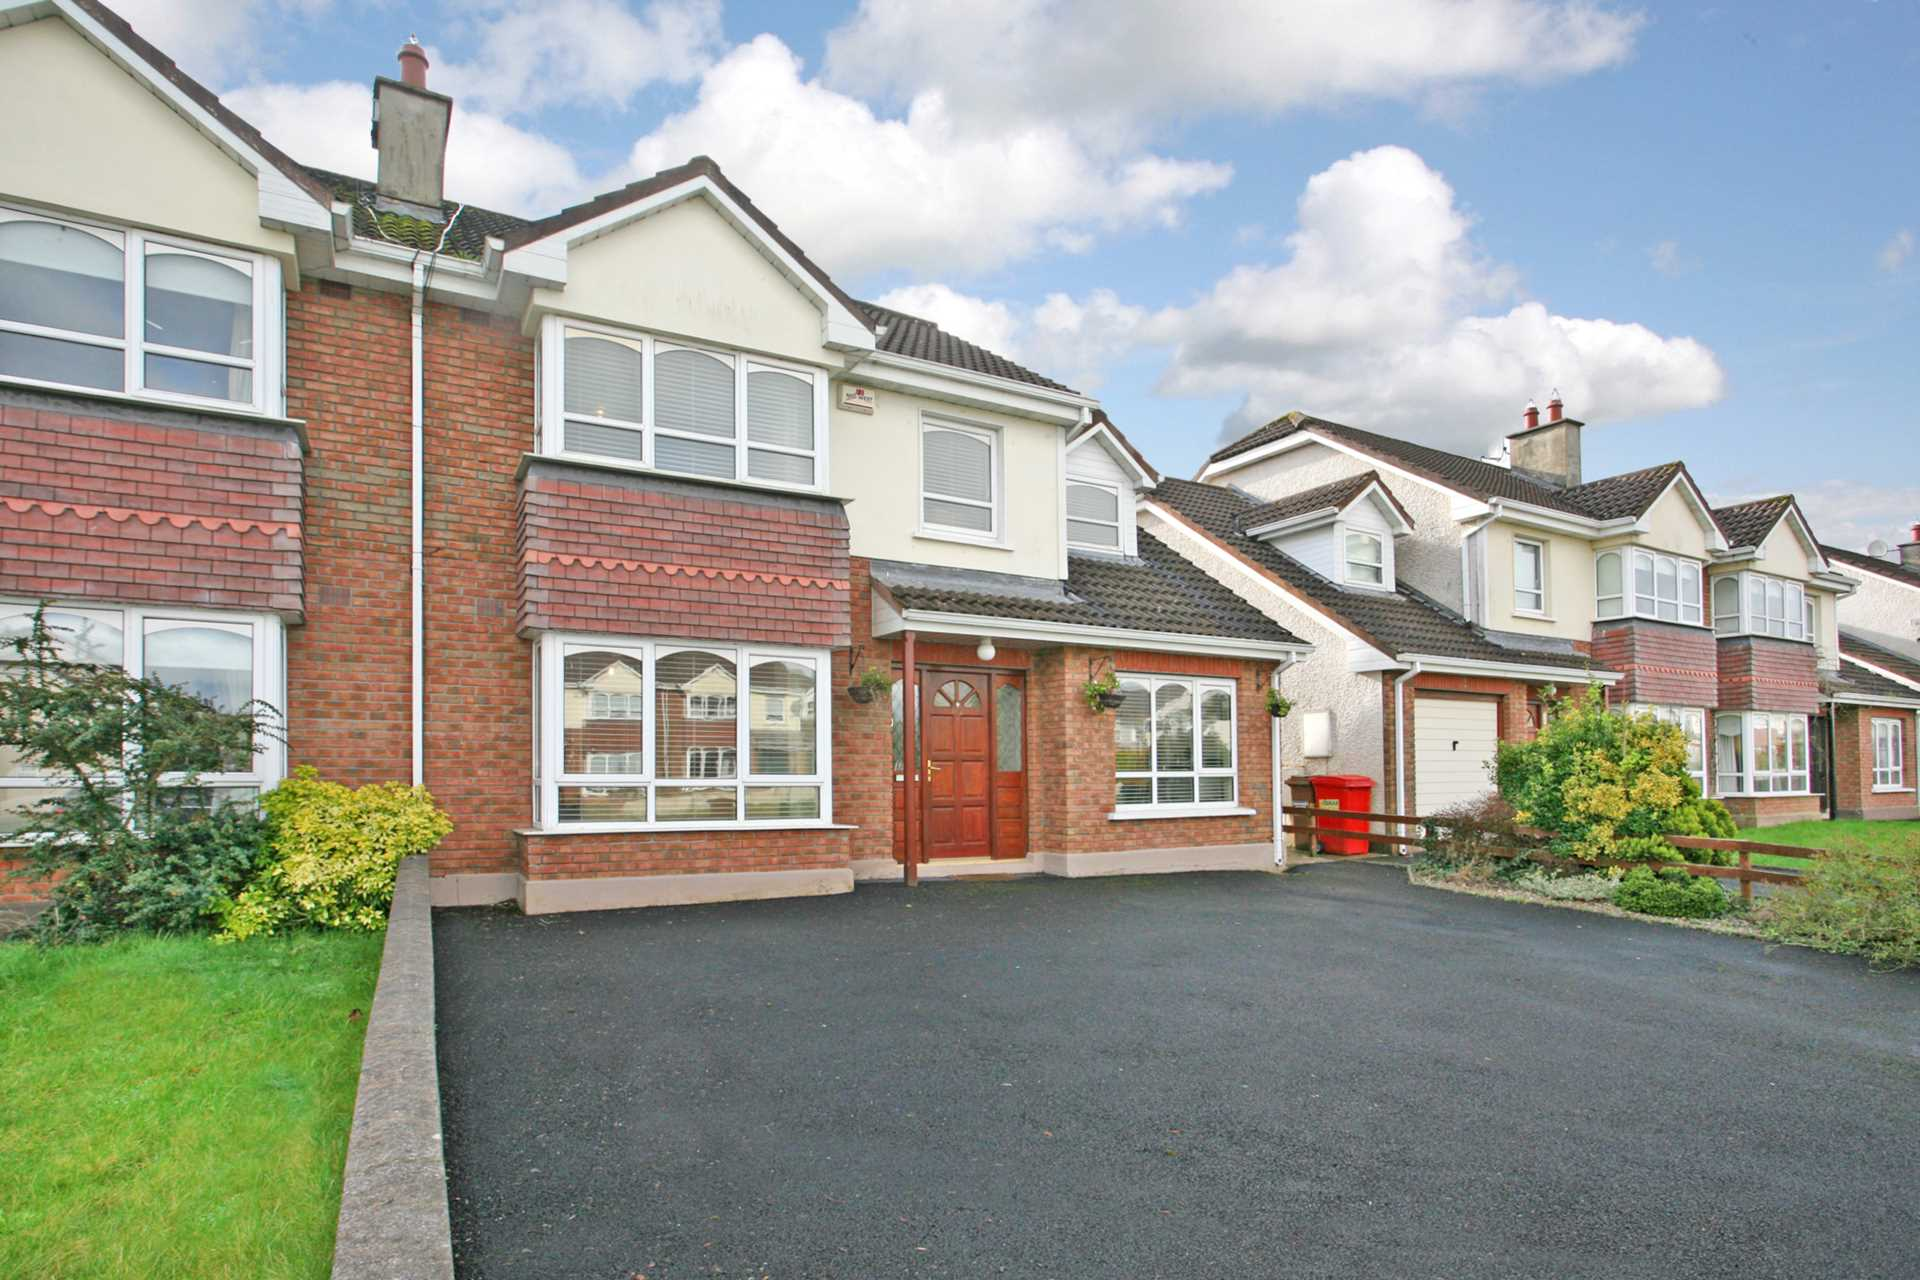 112 Oakfield, Father Russell Road, Raheen, Co. Limerick